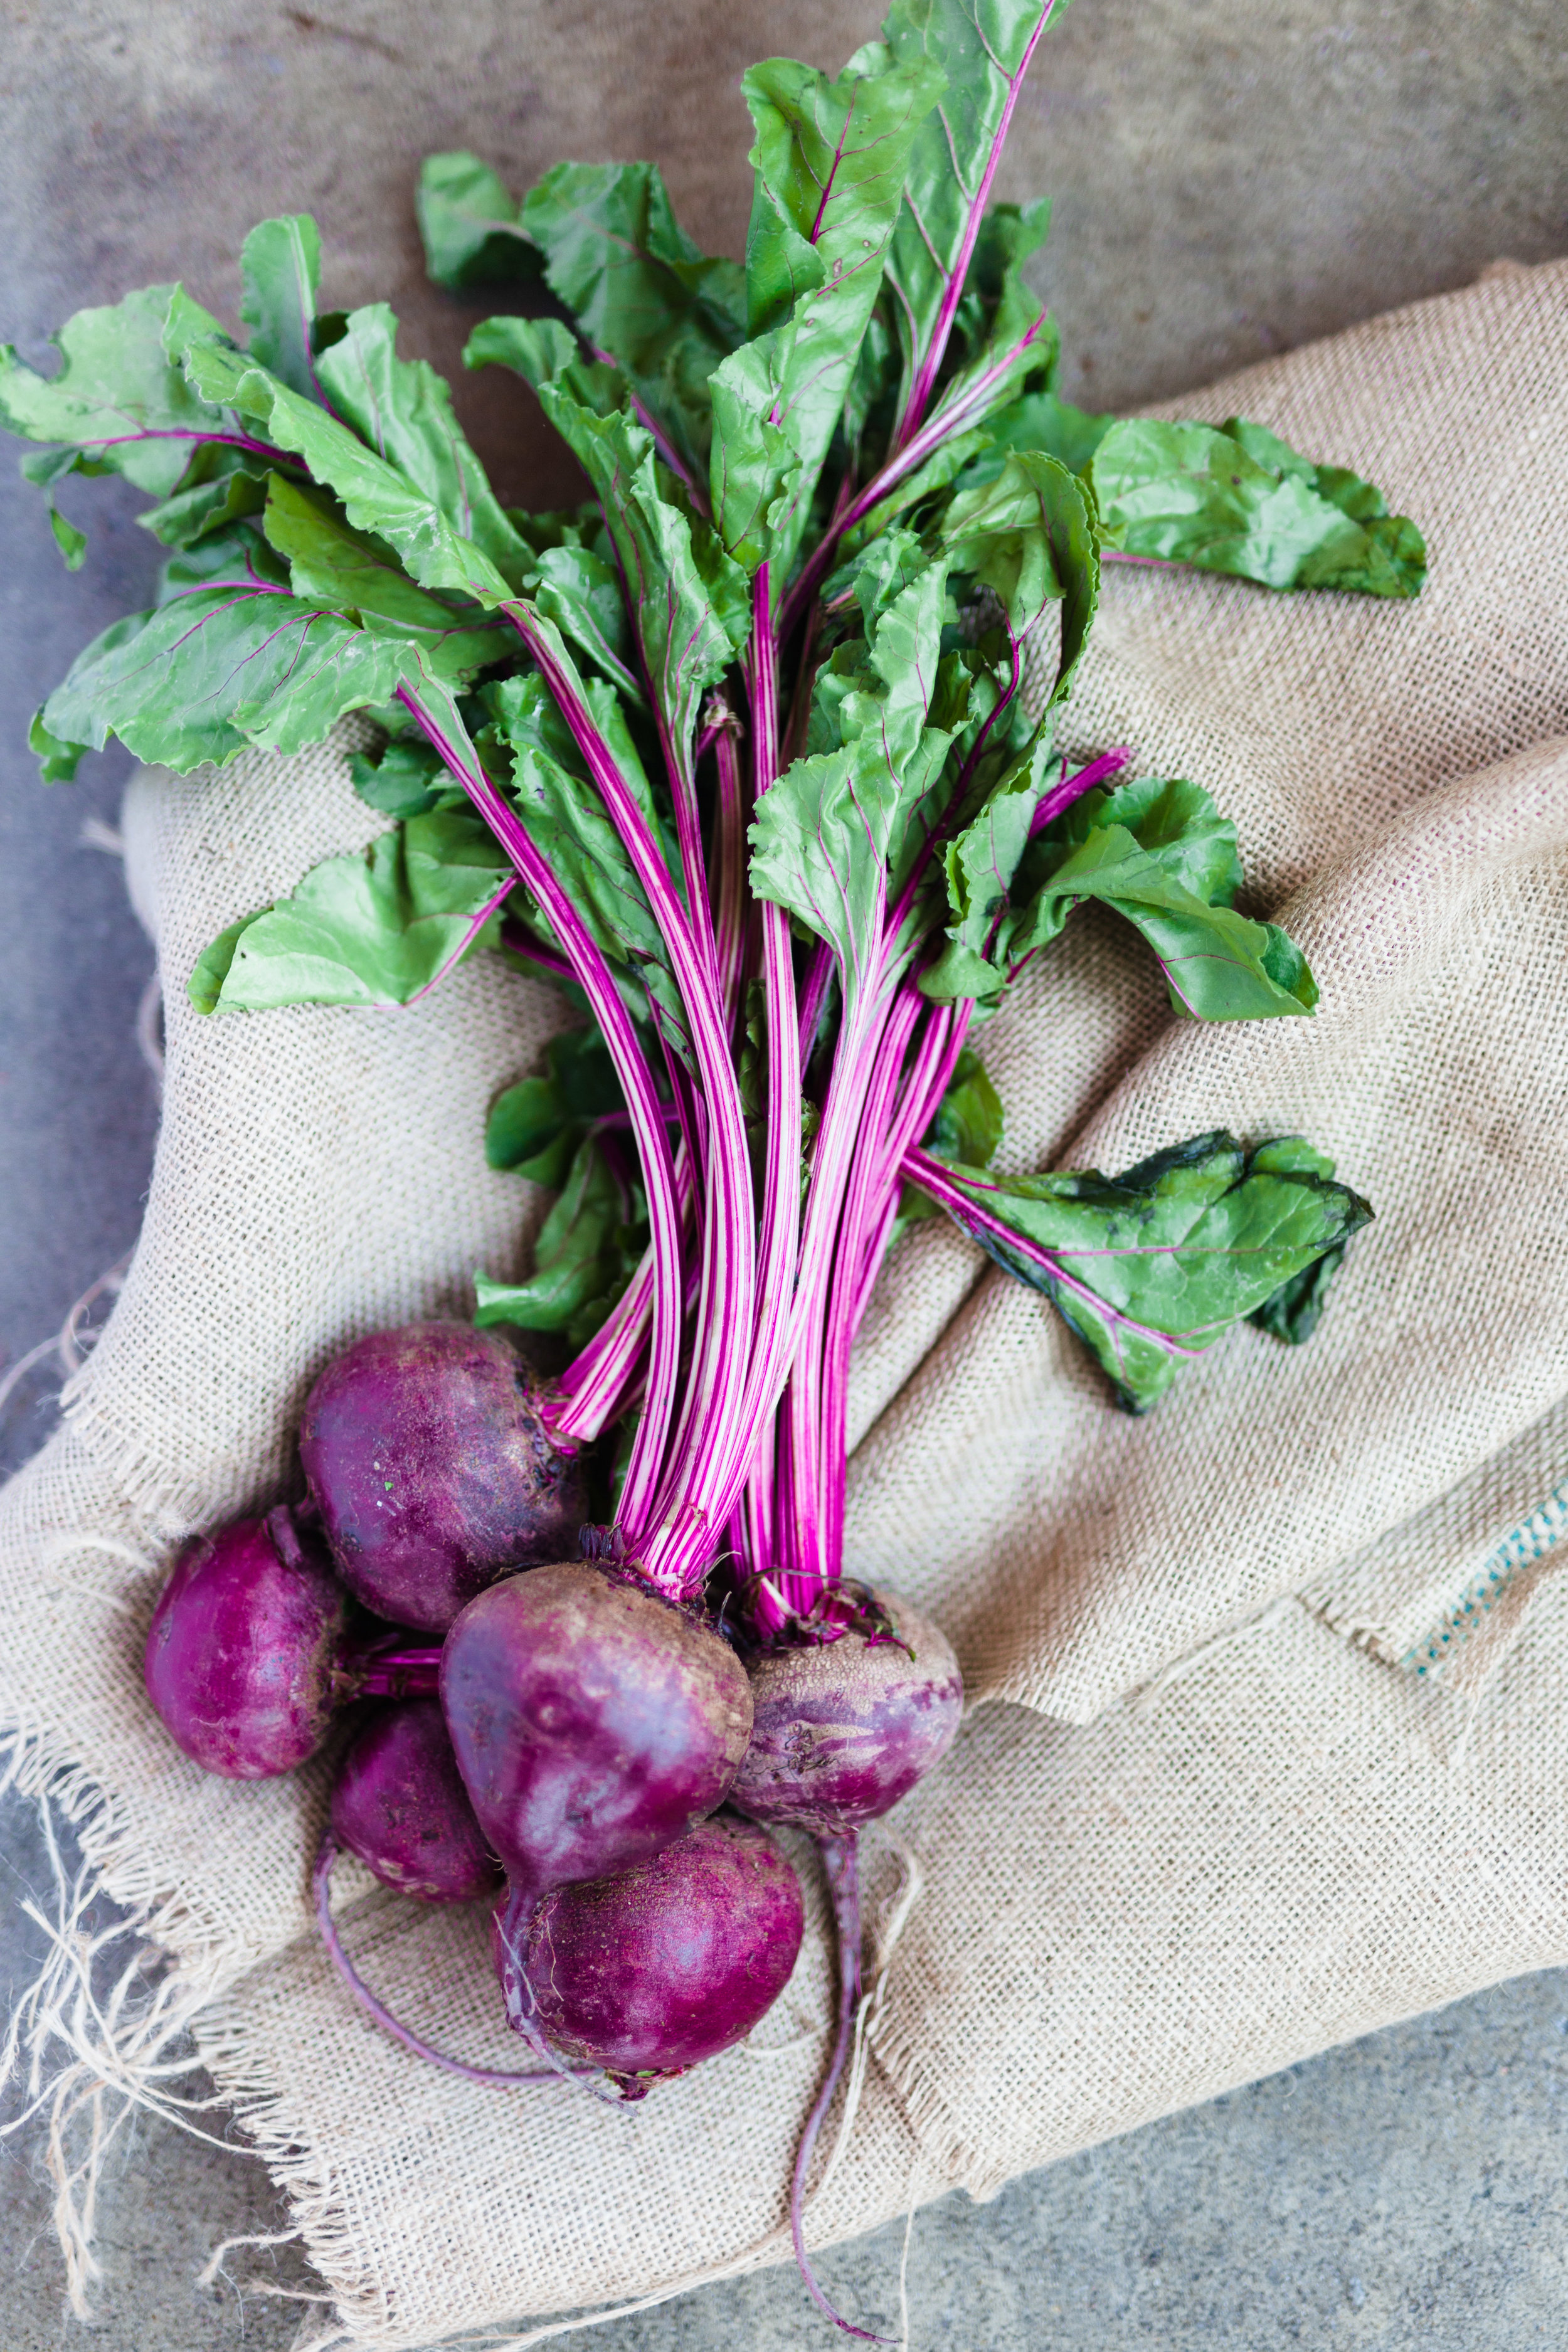 vivian howard a chefs life recipes beet kavass photographs by baxter miller